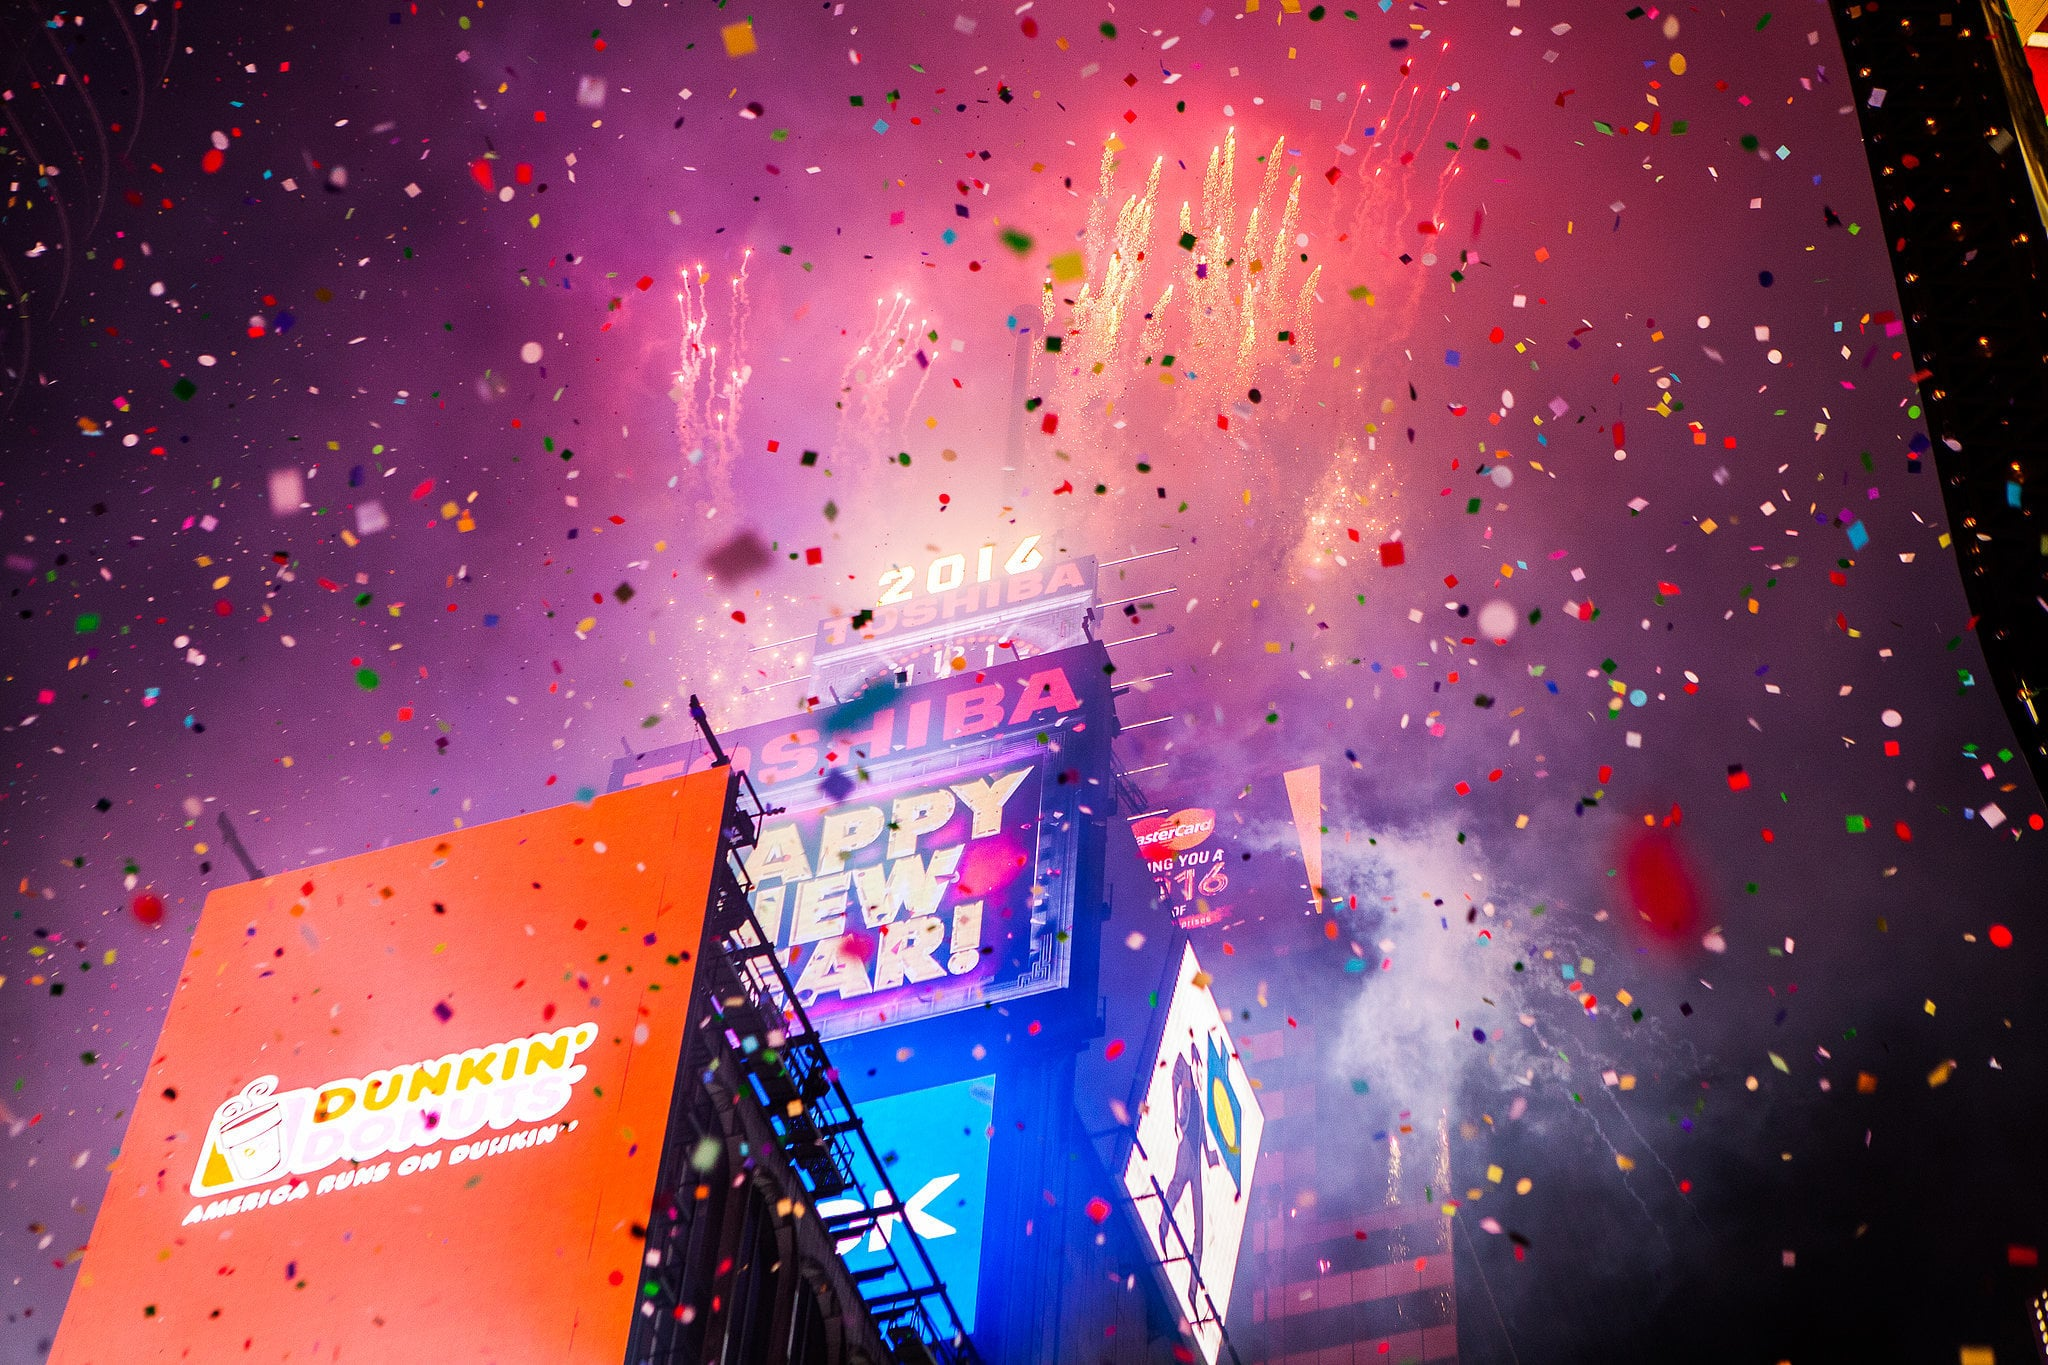 Or how about having the Times Square New Year fireworks as your wedding backdrop?